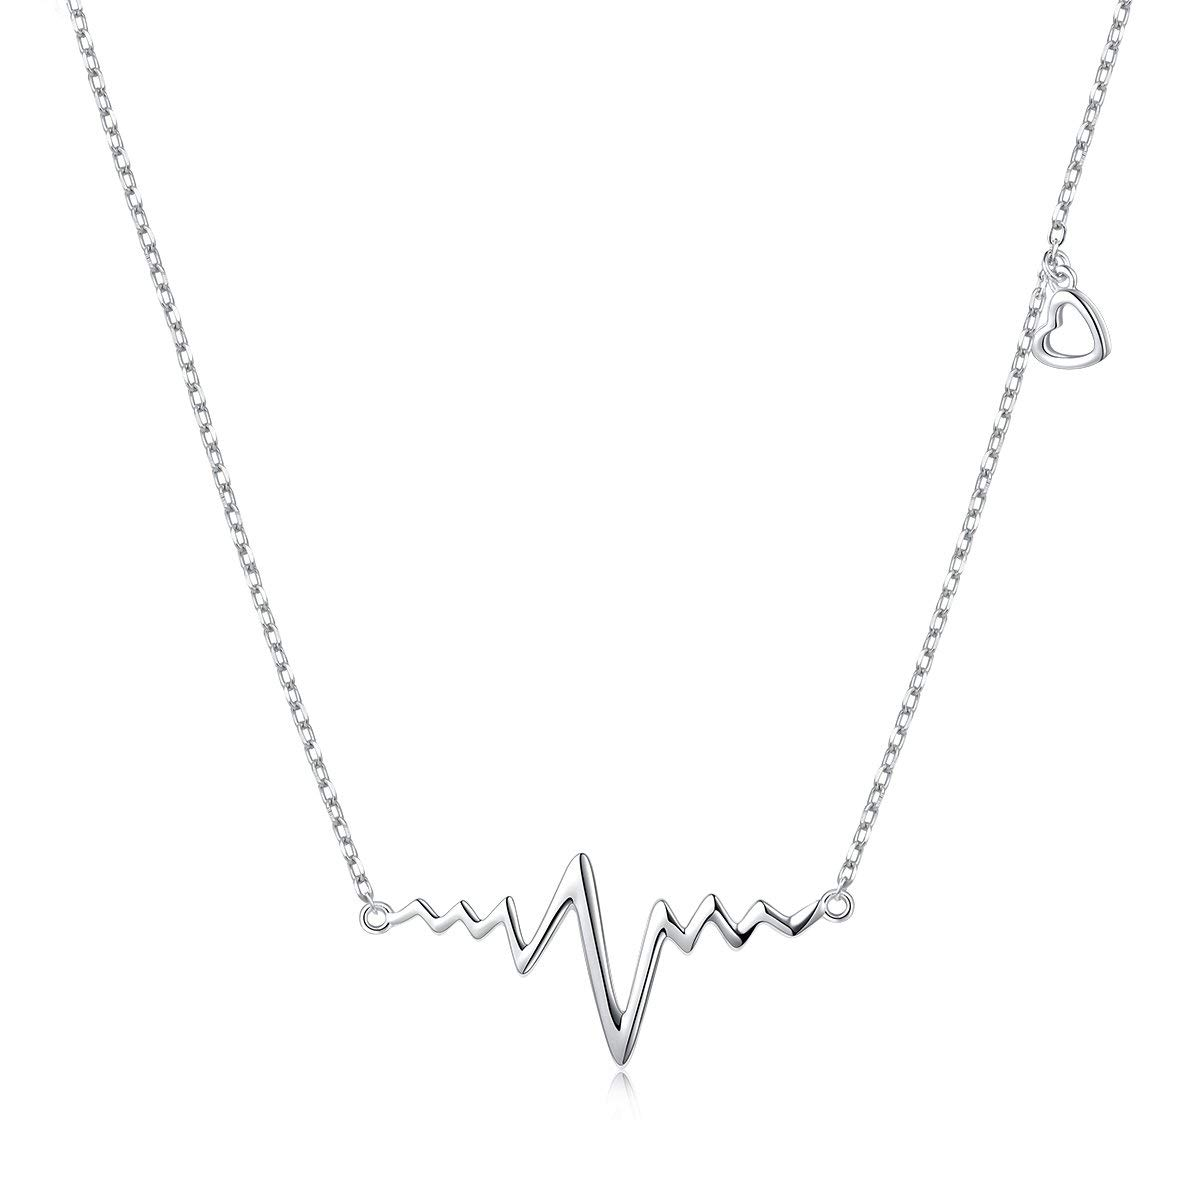 3c855c8bc Get Quotations · LINLIN FINE JEWELRY Heartbeat Necklace 925 Sterling Silver  Ekg Cute Life Line Heartbeat Love Cardiogram Necklace